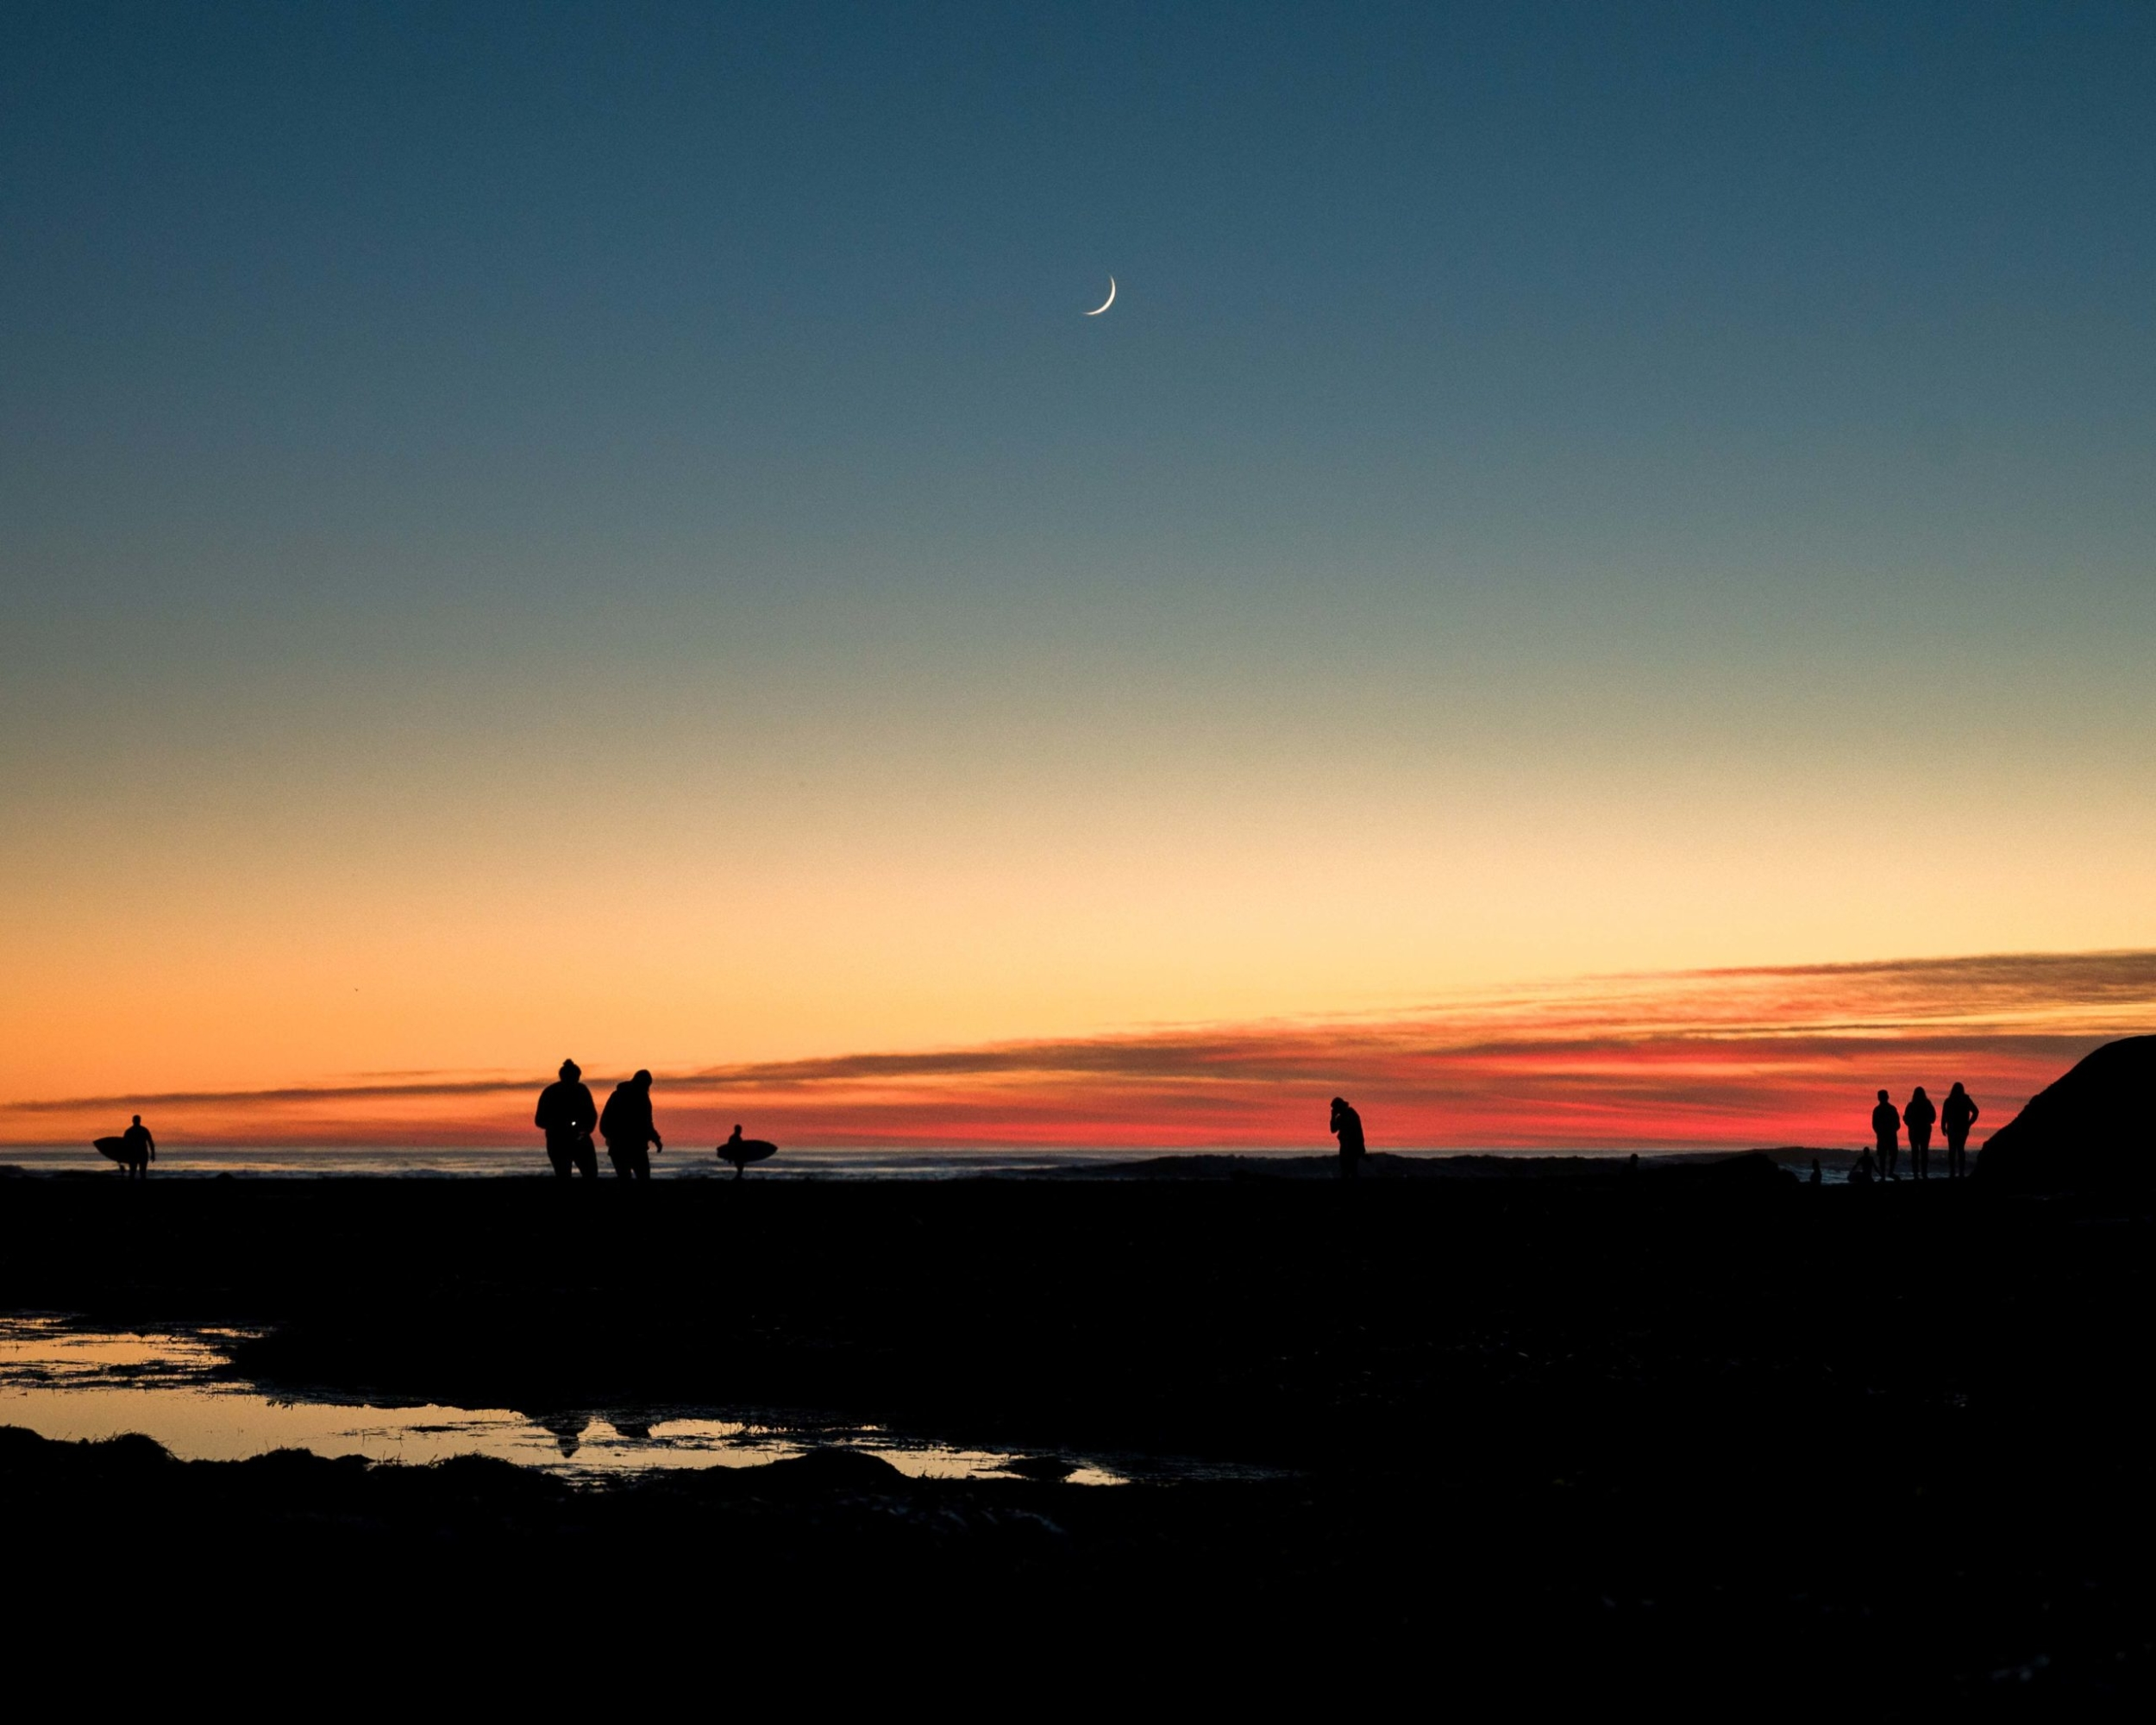 Silhouettes of people in the distance exploring the intertidal zone at sunset.